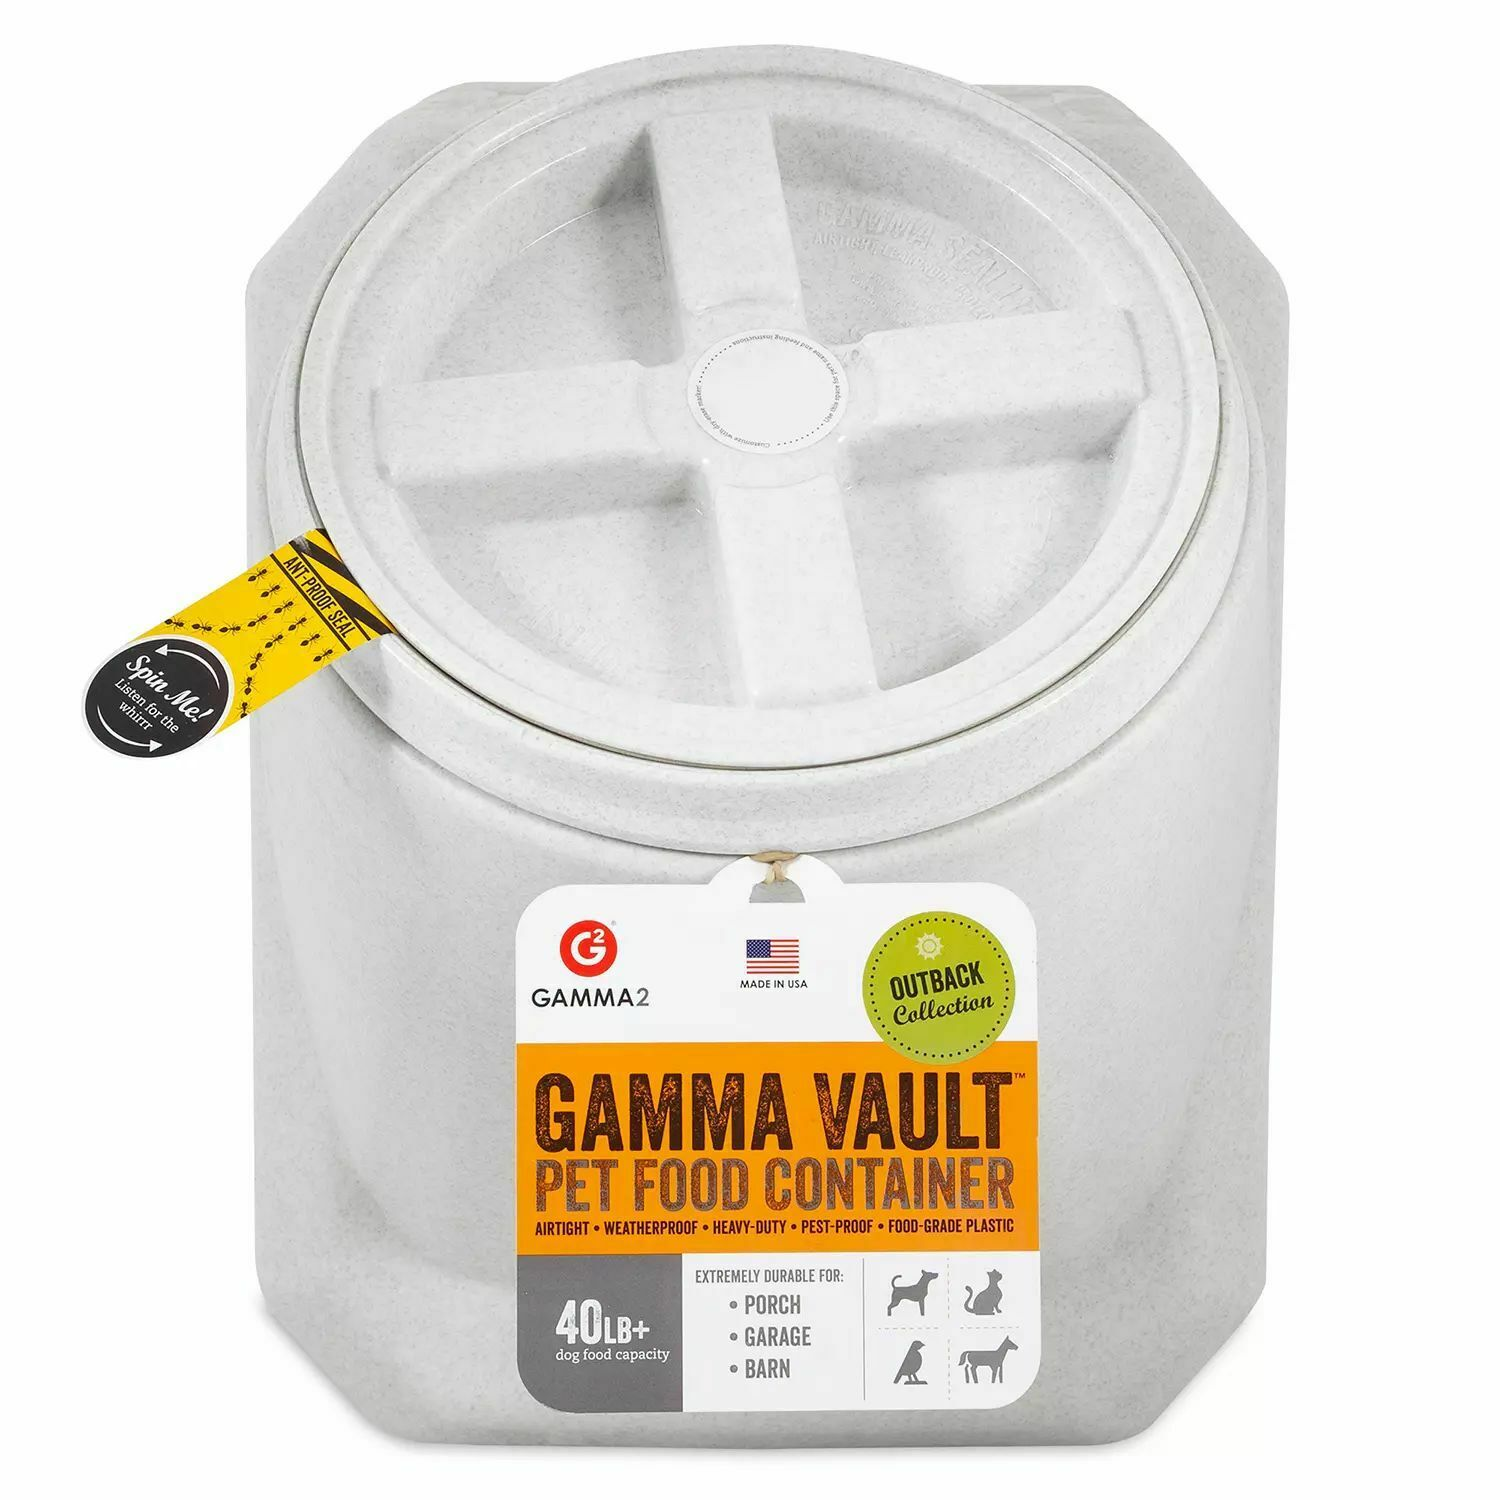 Gamma2 Vittles Vault Jr Pet Food Container For Sale Online Ebay